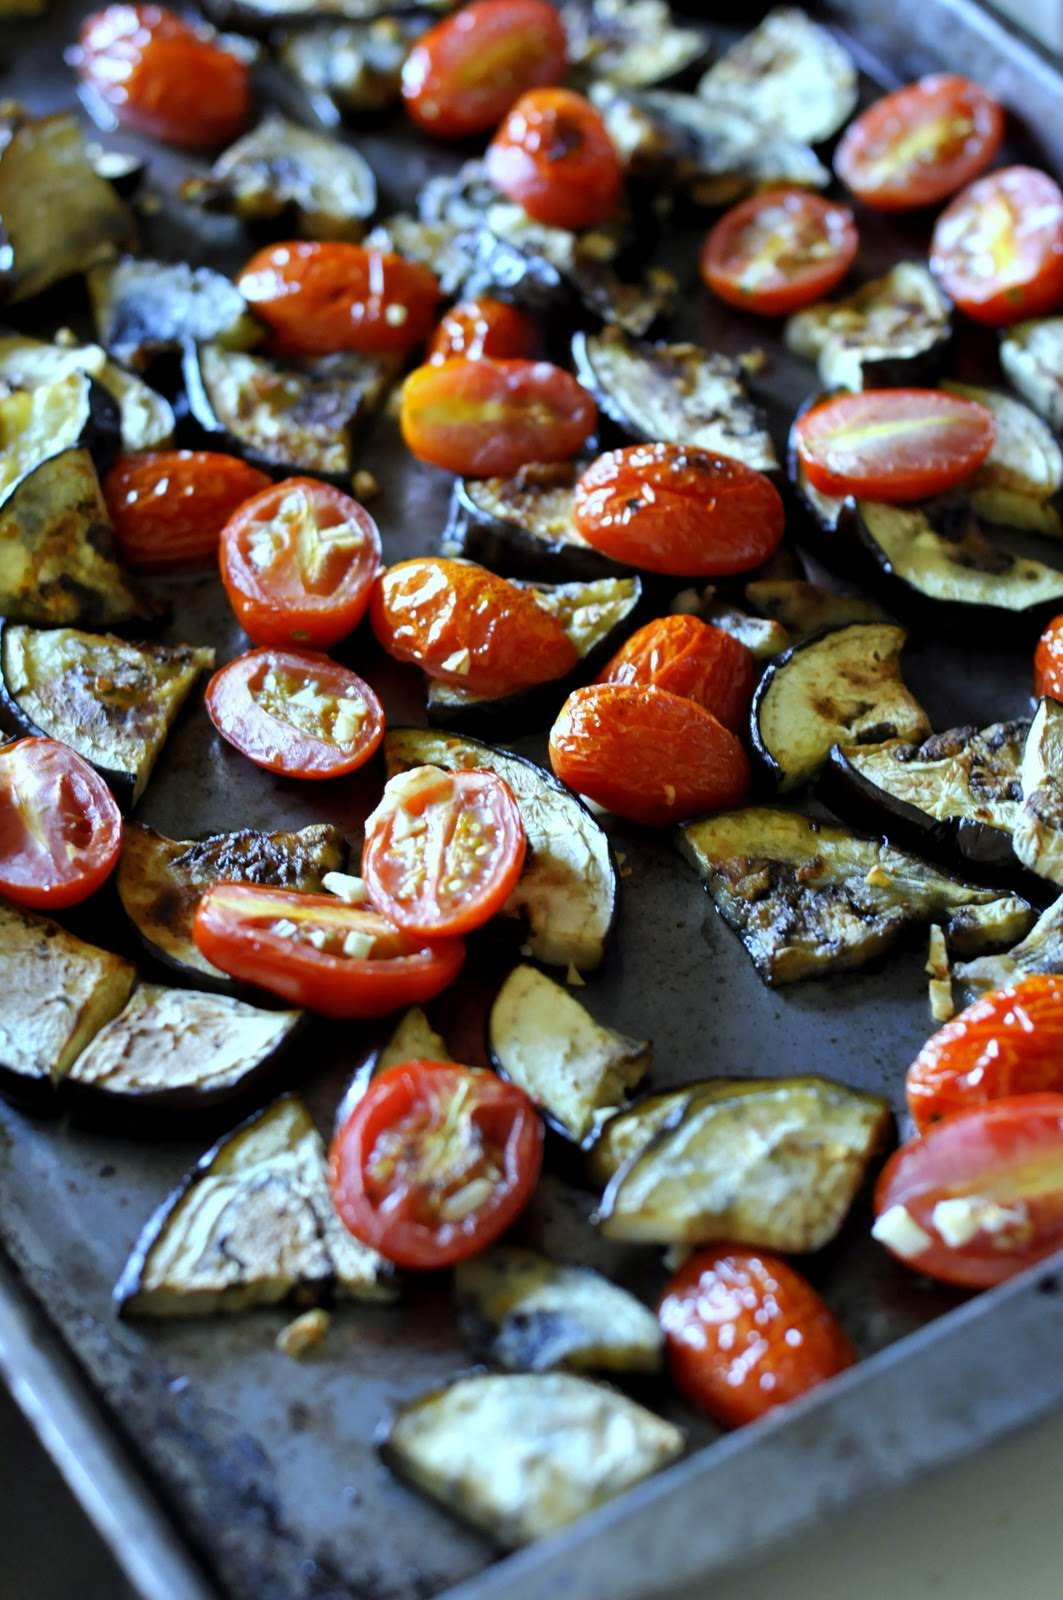 Roast eggplant with grape tomatoes and garlic for a tasty topping for your Friday night pizza.